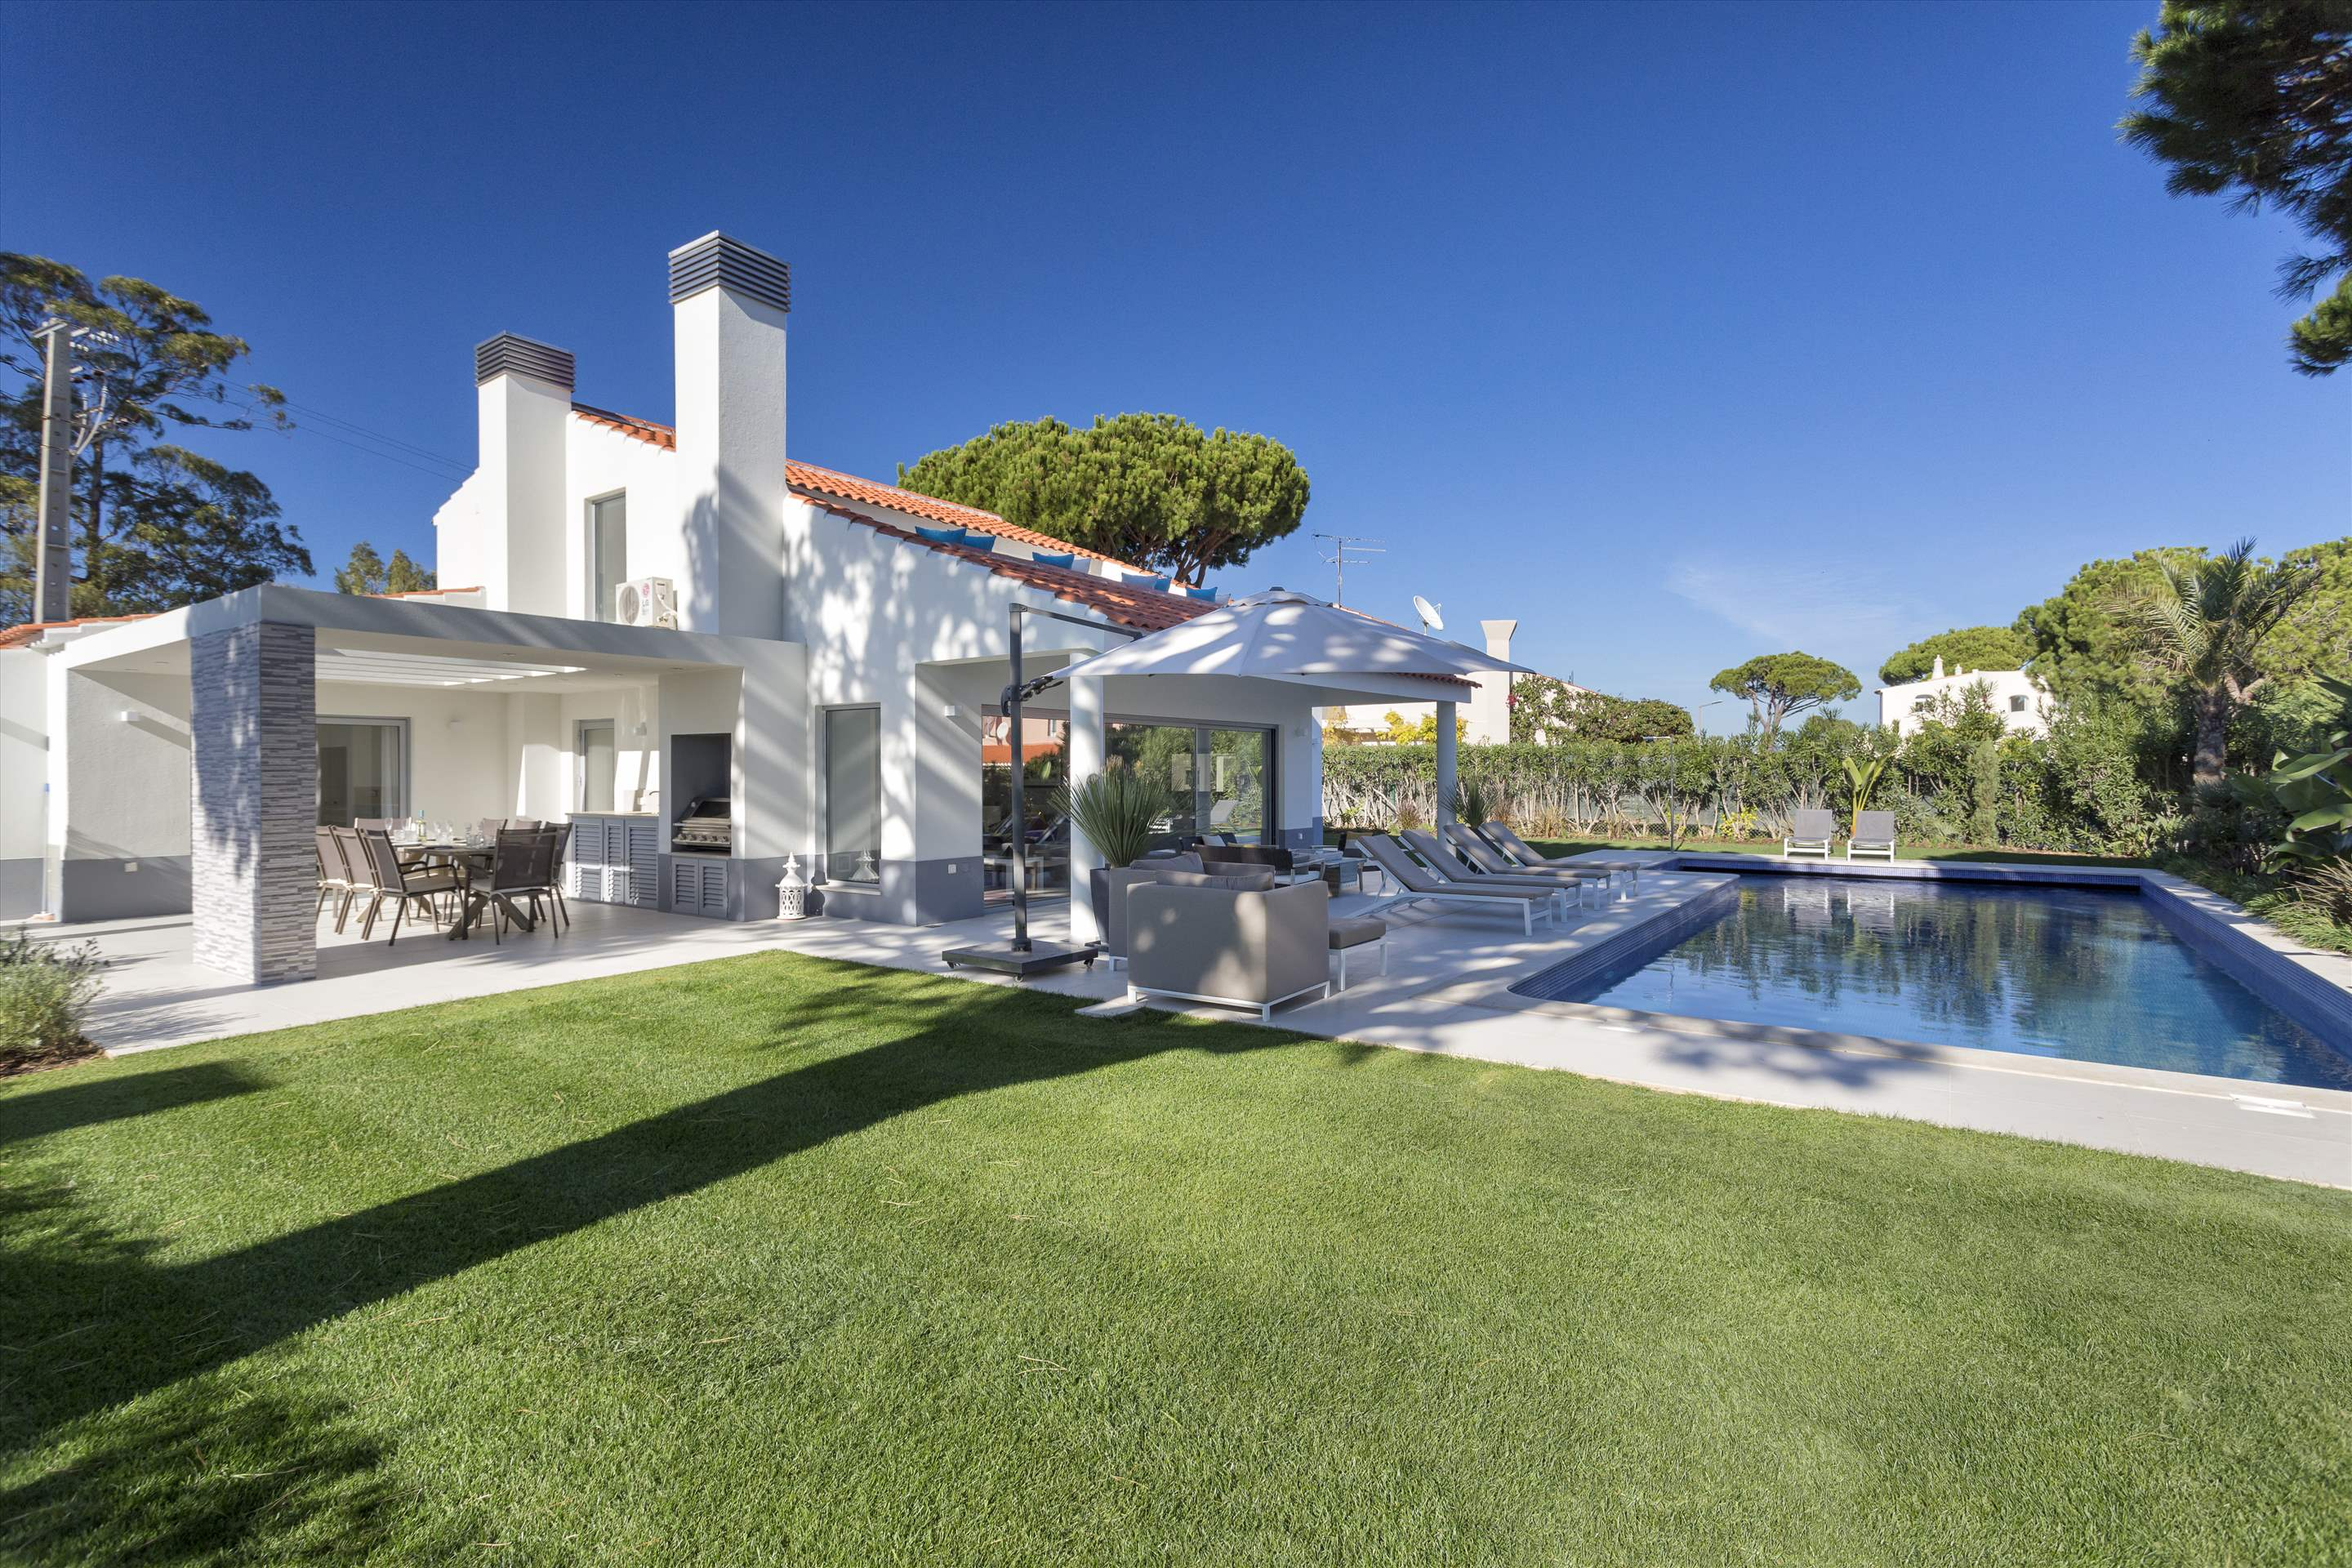 Casa Coral, 4 bedroom villa in Vale do Lobo, Algarve Photo #7